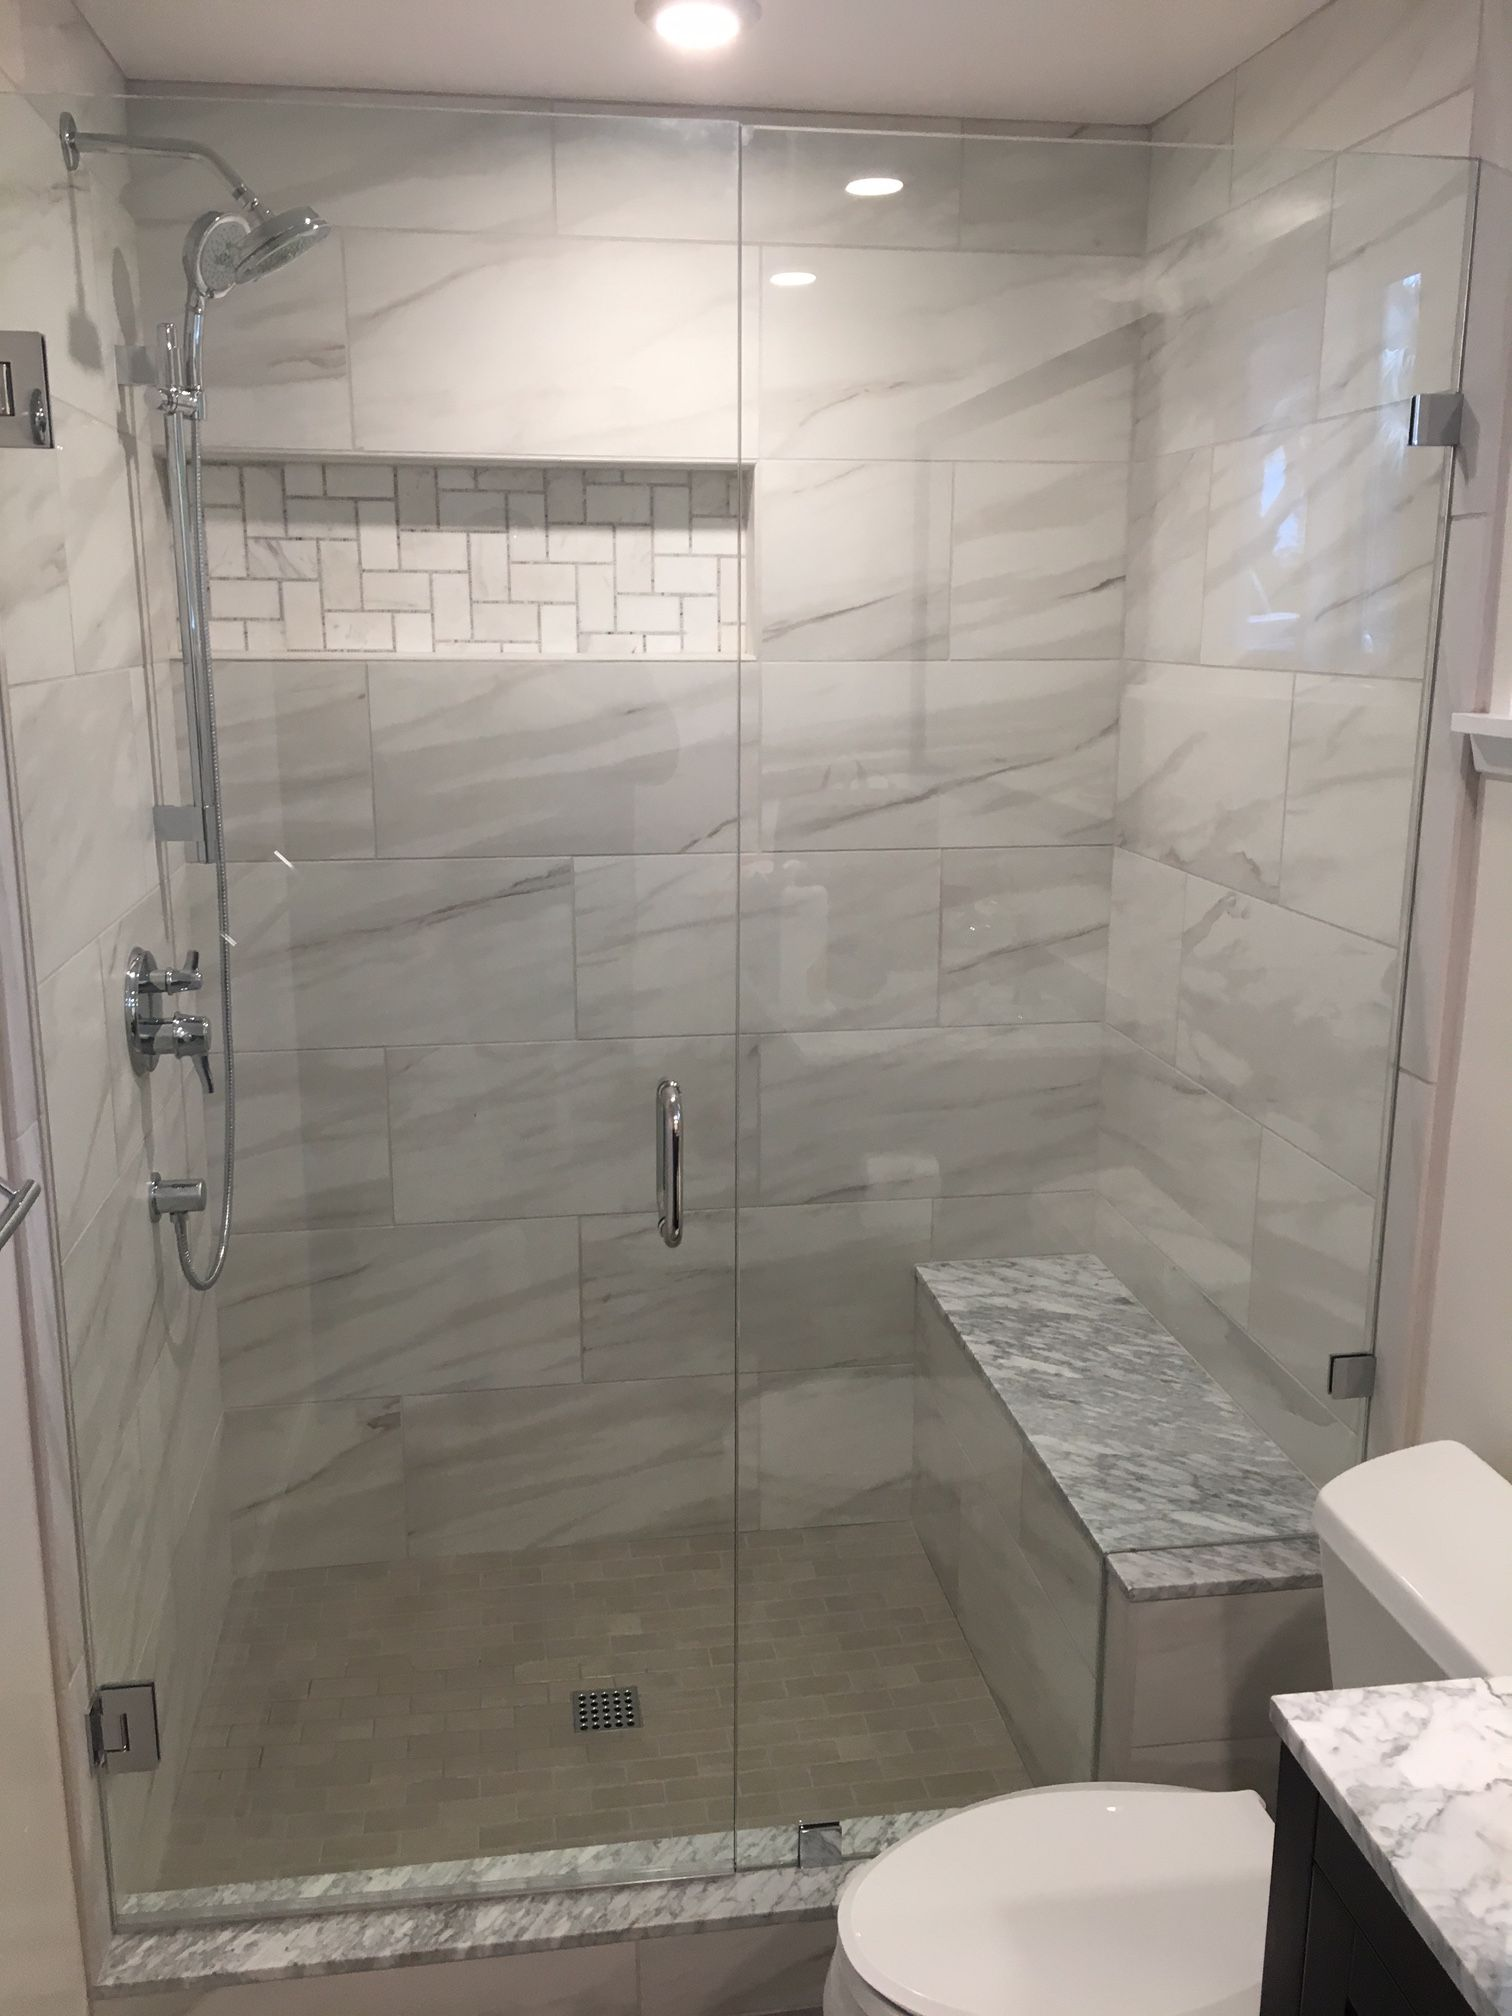 JK Wood Construction Porcelain shower-walls and floor, carrara ...